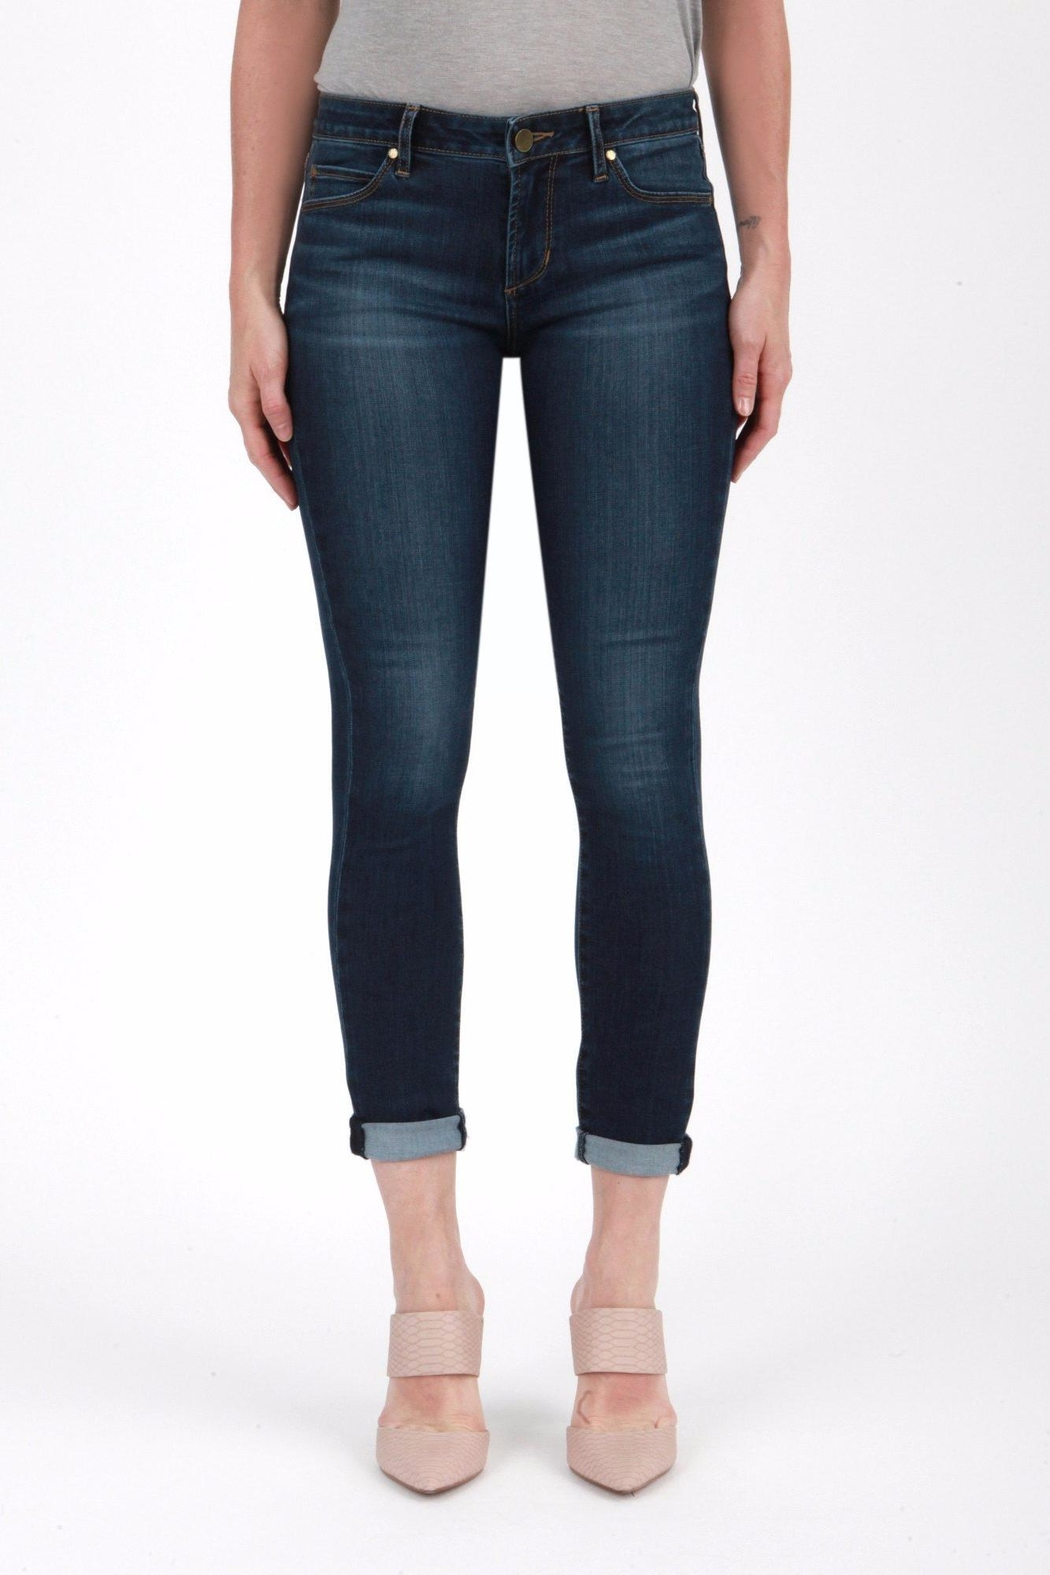 Articles of Society Cuffed Skinny Jeans - Main Image